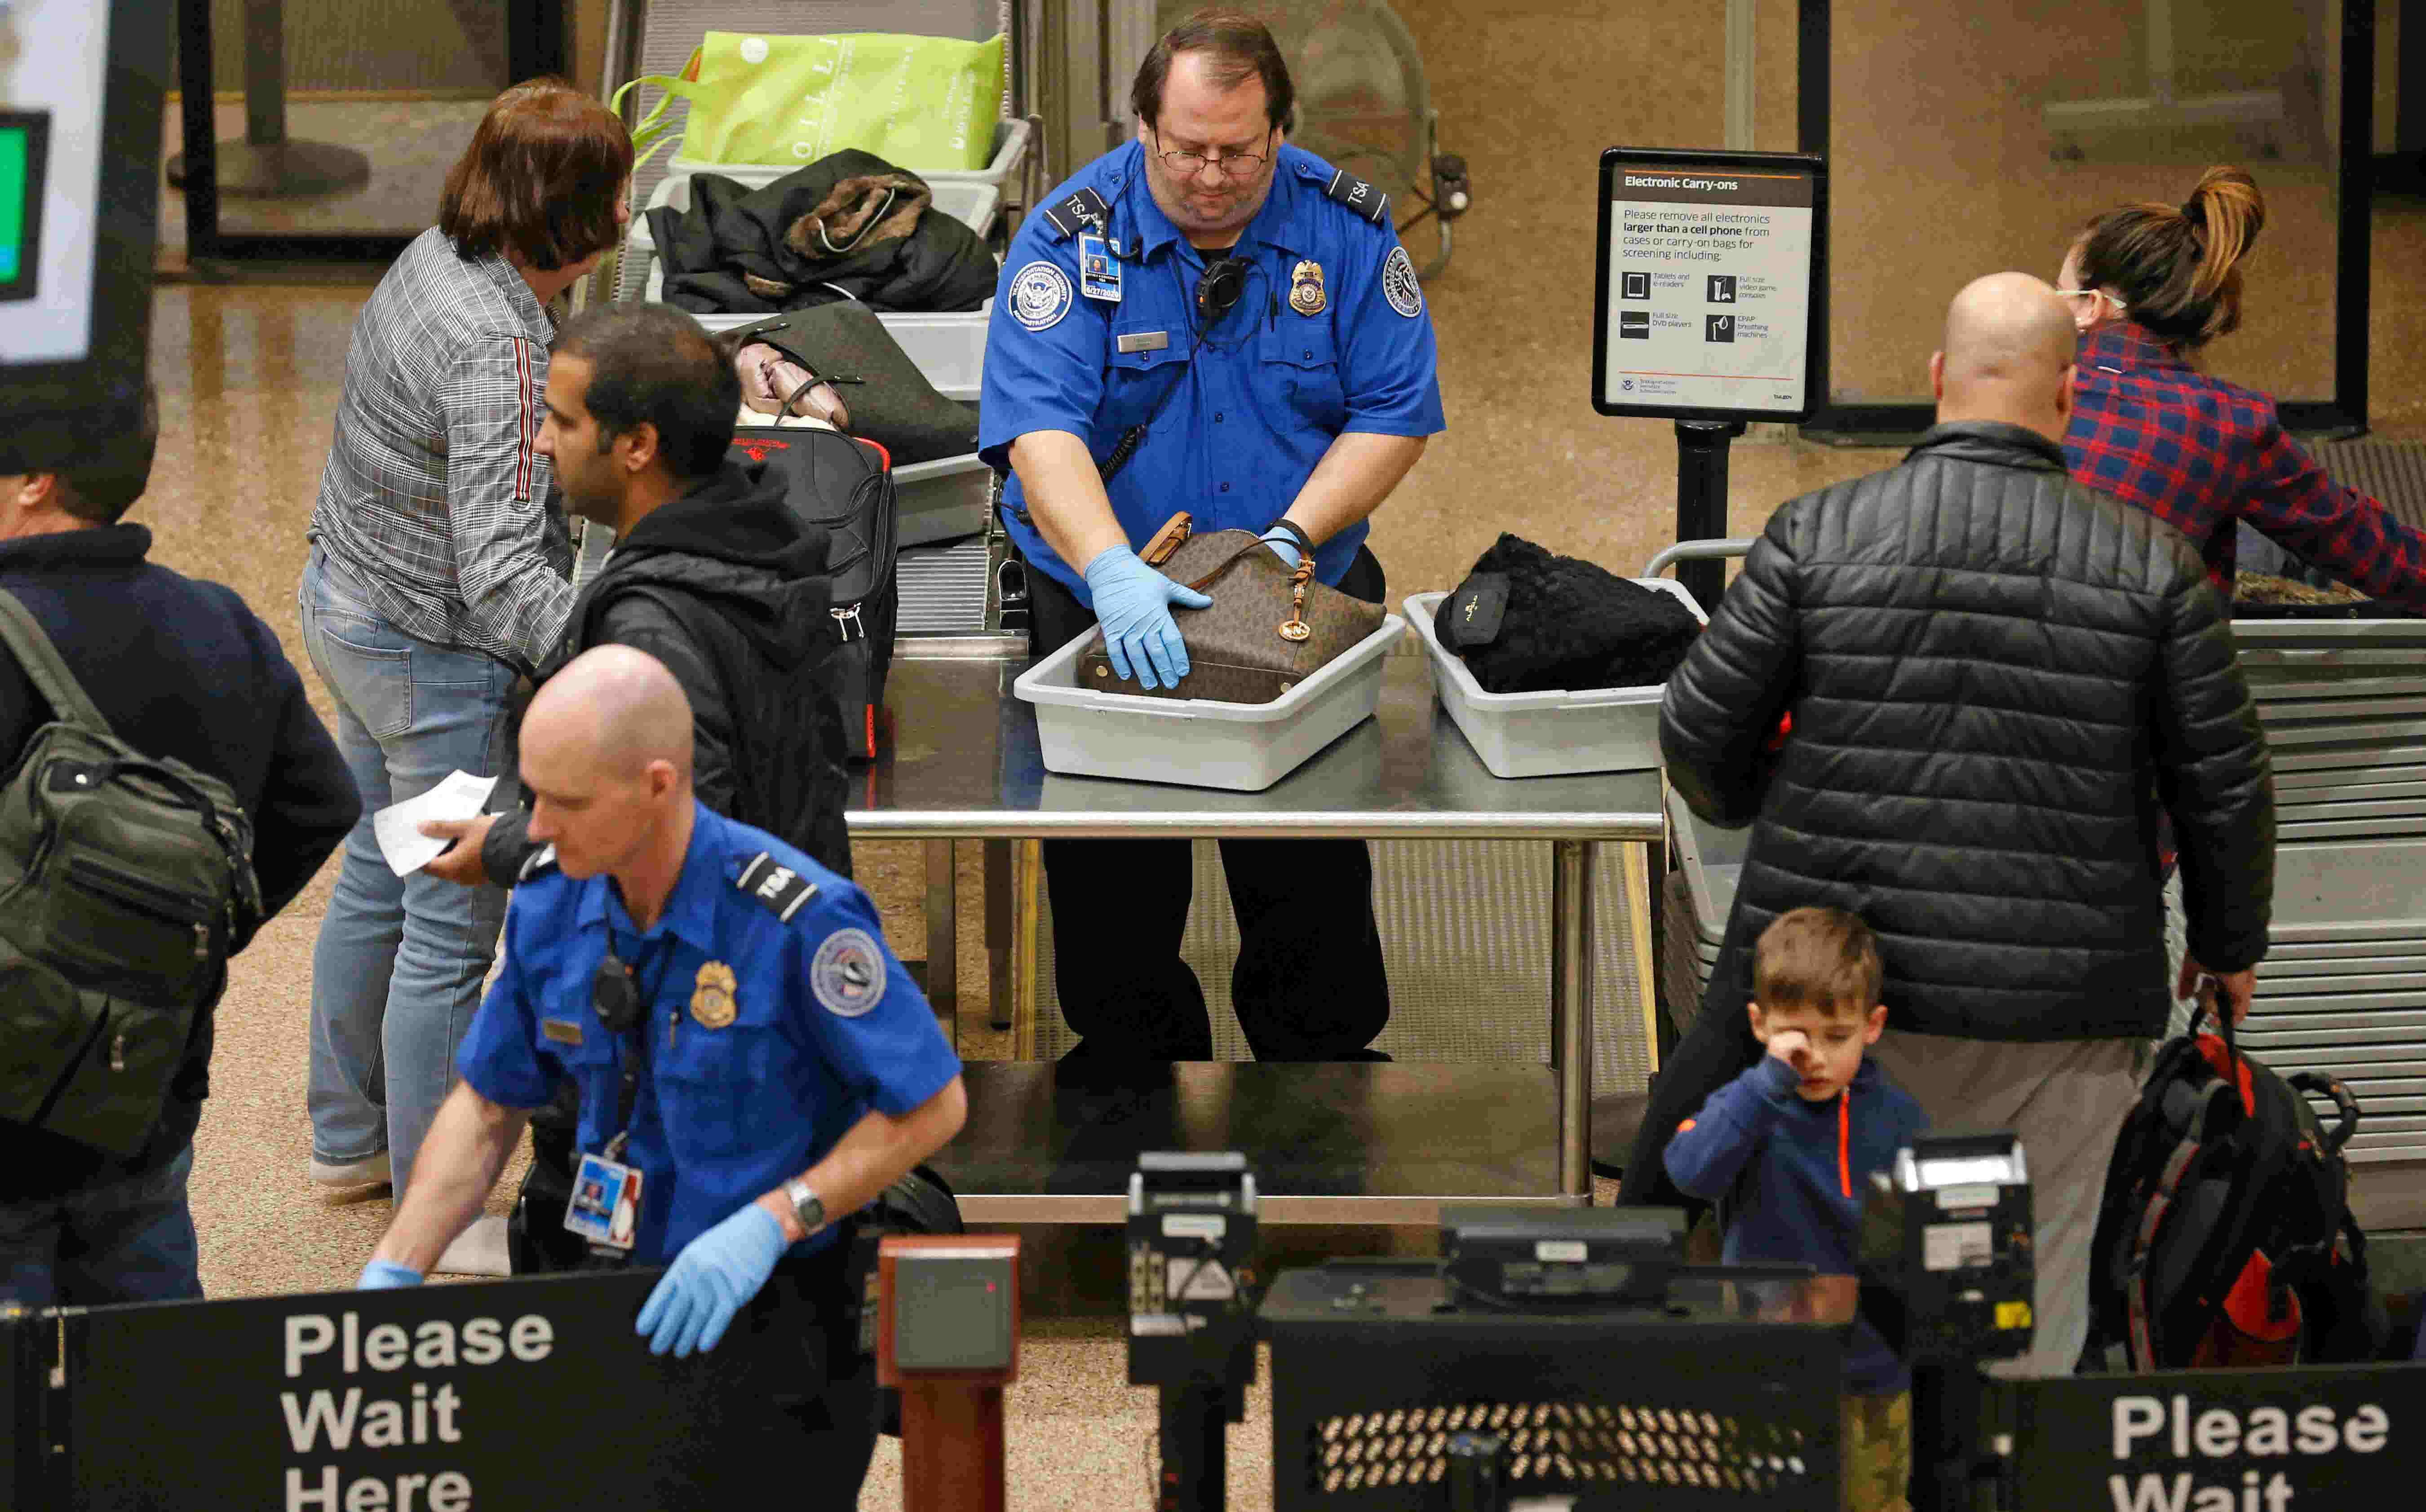 Grab your change! Travelers left TSA almost $1 million in inadvertent 'tips' last year